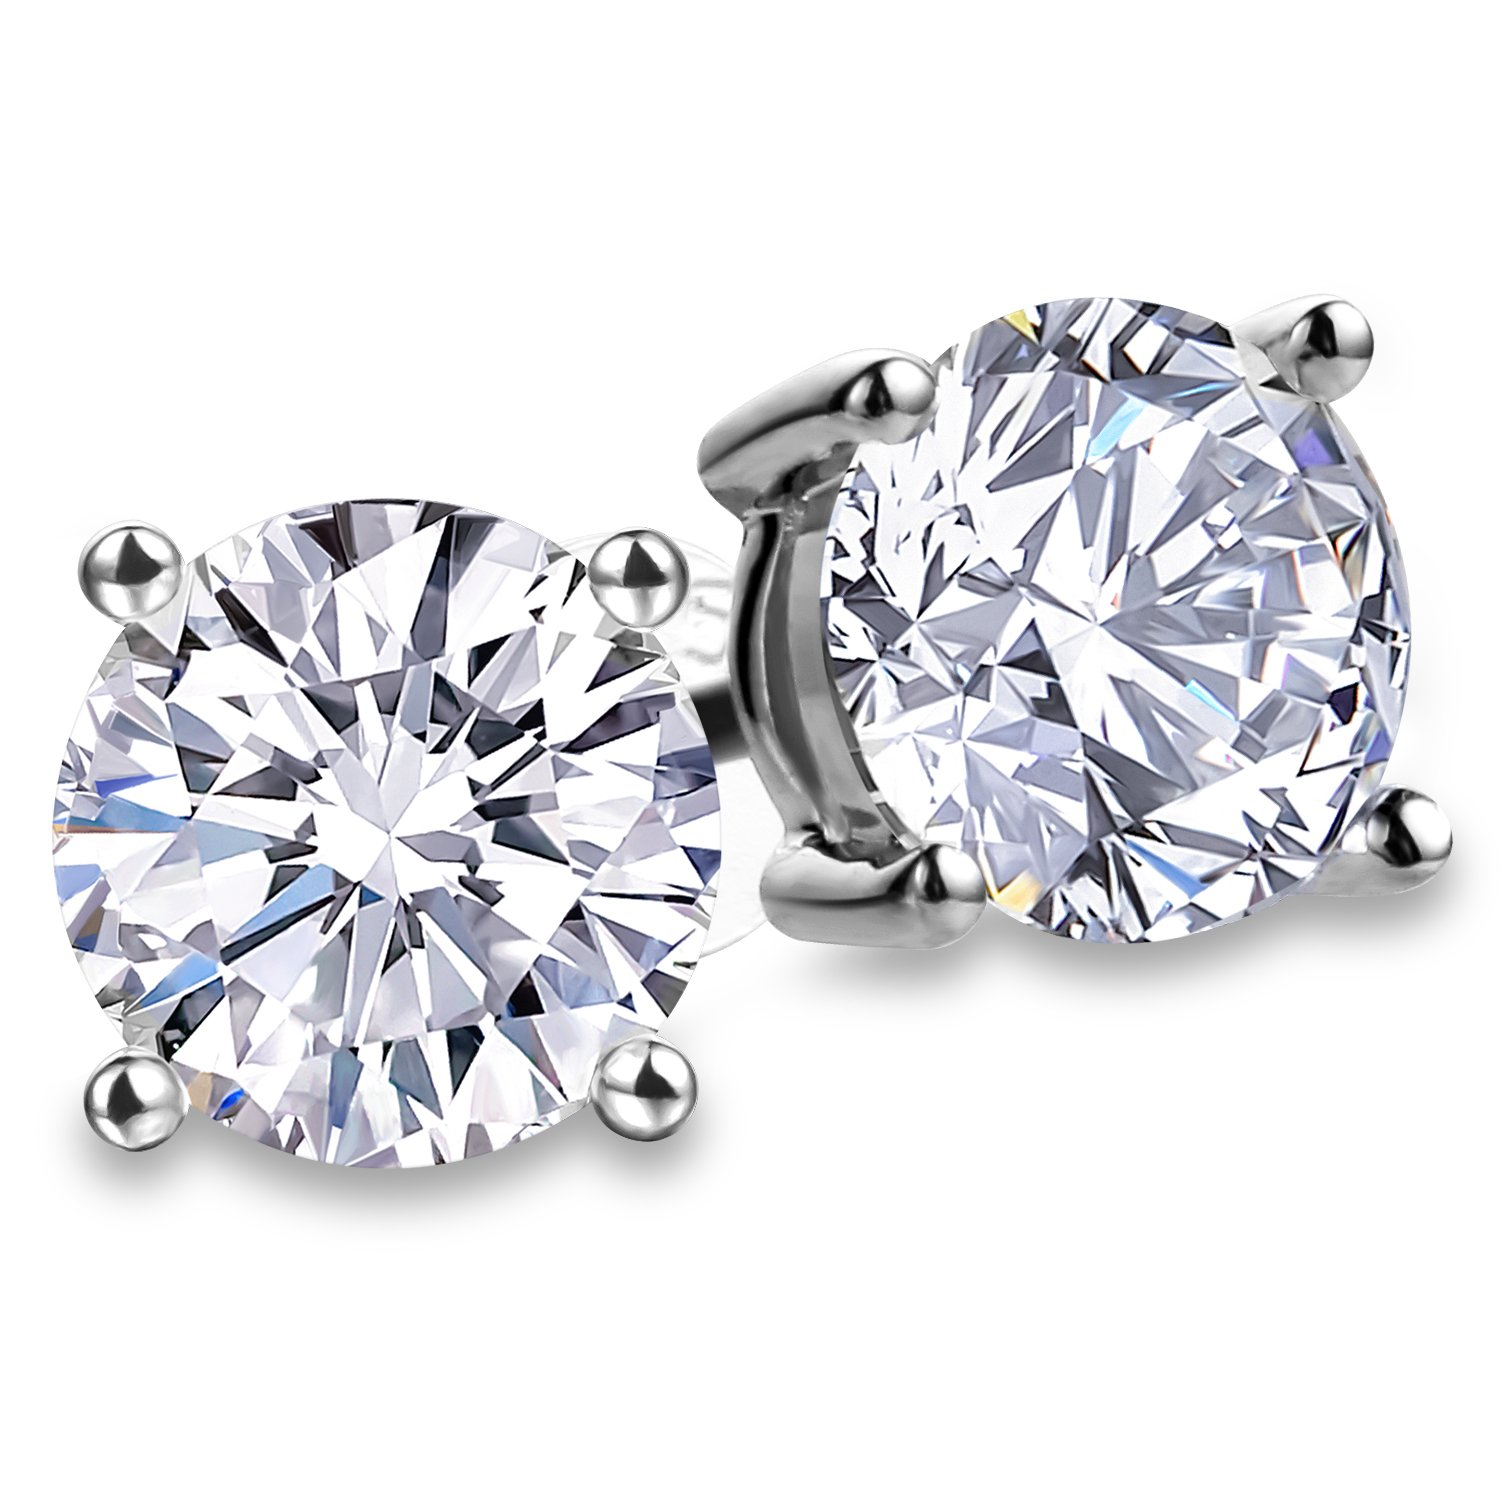 Fashion S925 Sterling Silver Cubic Zirconia Stud Earrings for Women 4 Prong Sparkling Round Pure Brilliance CZ Stud Earrings (Round Cubic Zirconia 6.5mm)